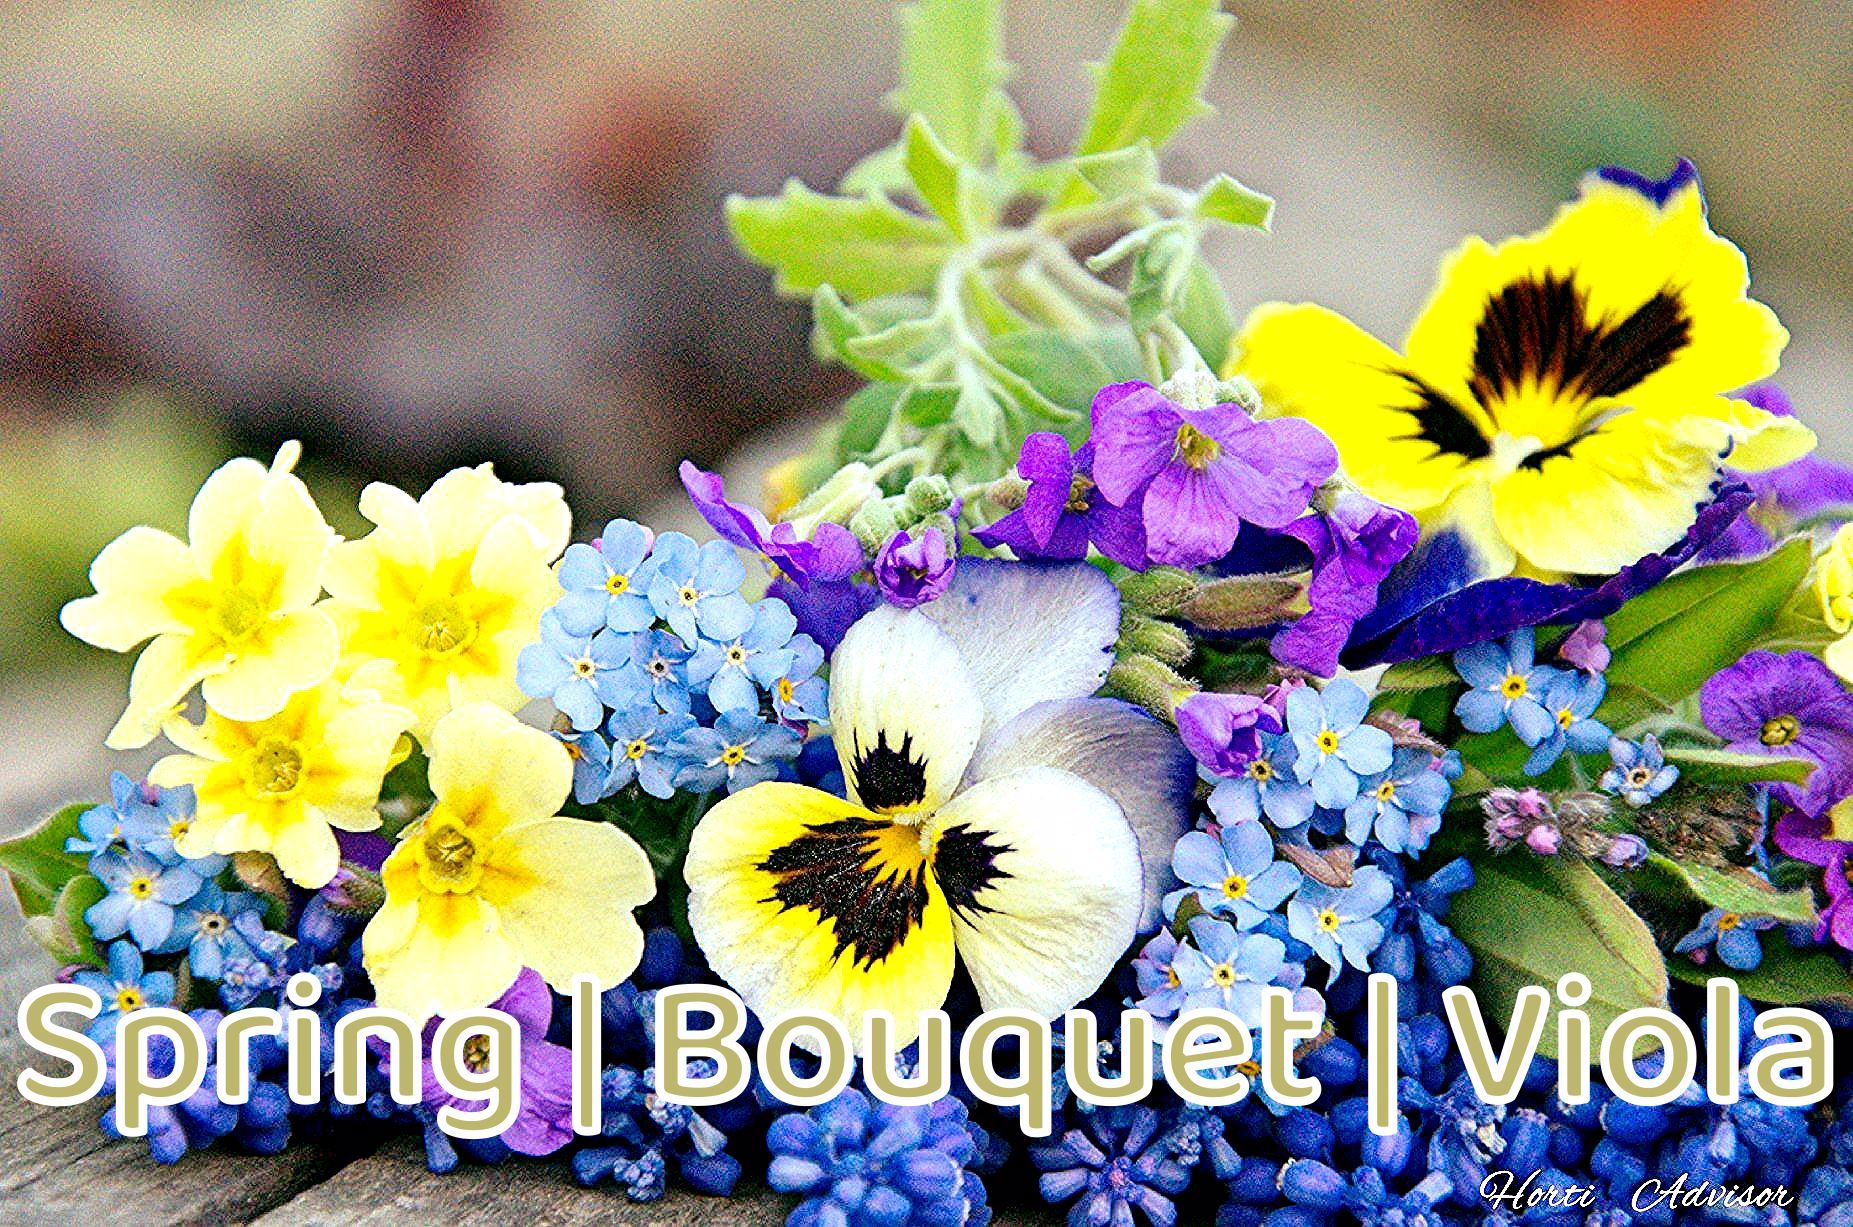 It doesn't really matter how big a bouquet 💐 you want to give. All you need is a small flower 😉. Worse when it comes to choosing the species and color of the plant. | #bouquet #flower #flowers #plant #bratek #viola #bukiet #wiosna #spring #kwiaty #ogród #ogródek #forget-me-not #bouquets #stokrotka #floral #garden #plants #prezent #ogród